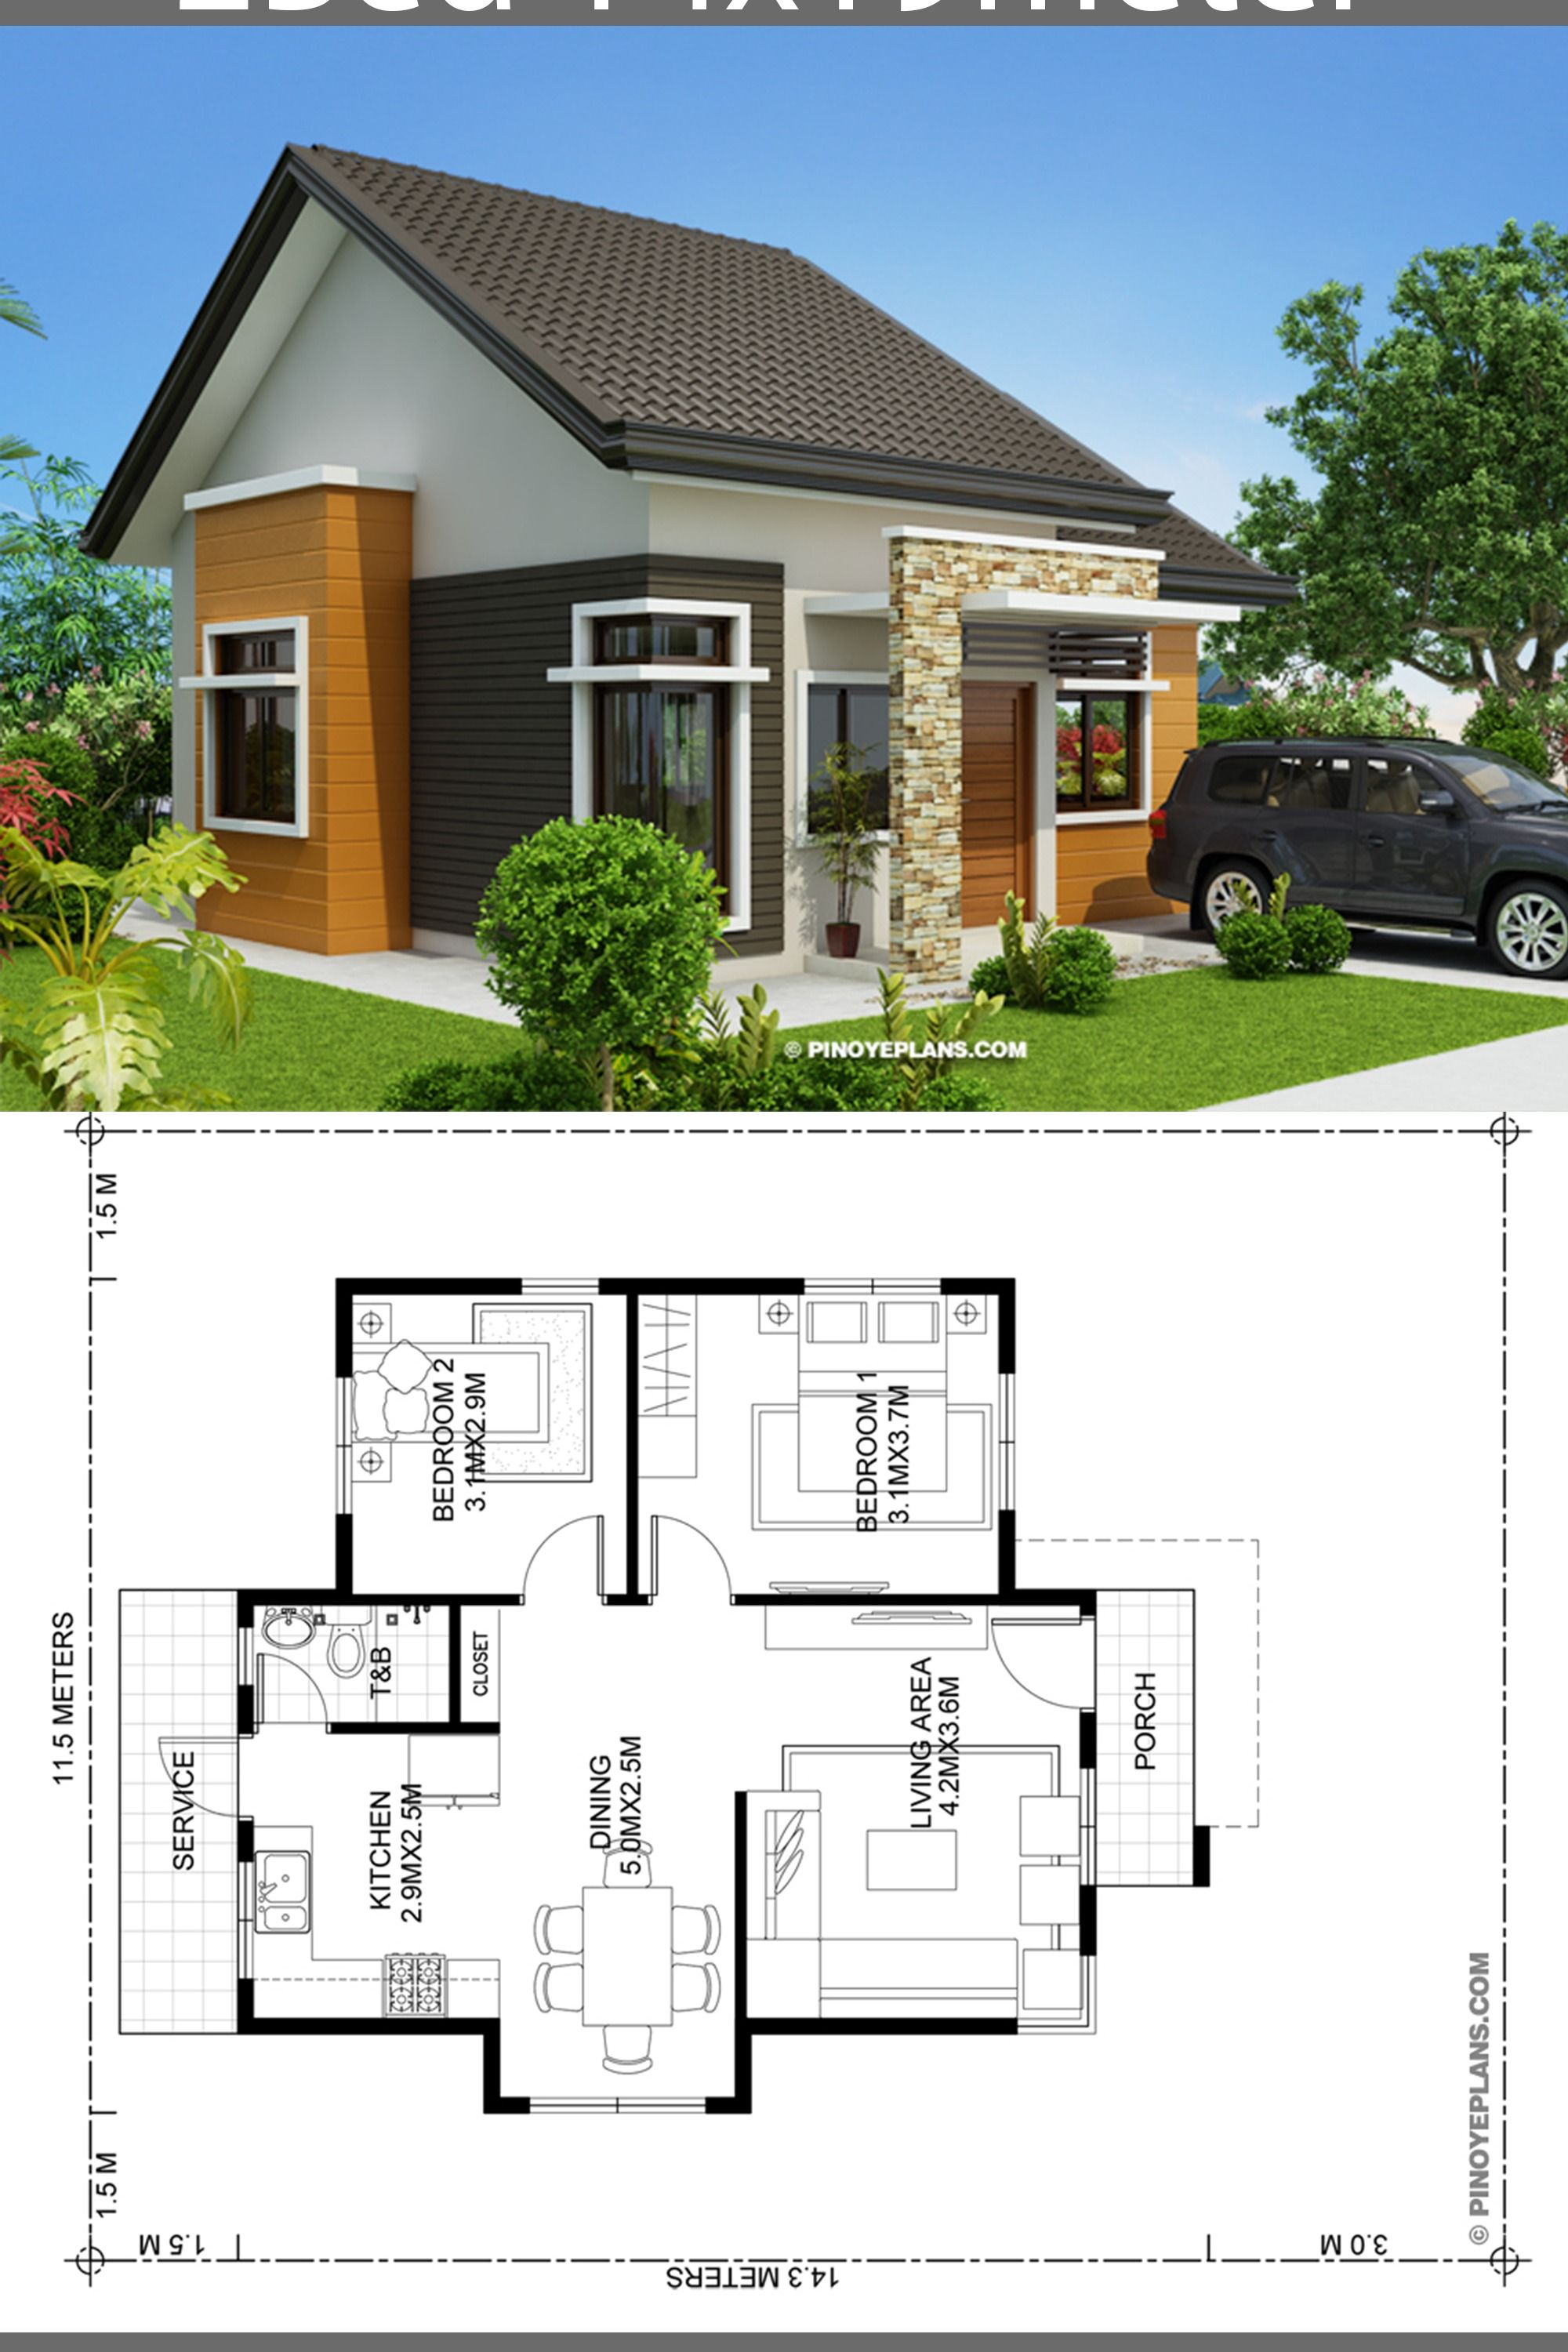 Pin By Amat On Design Denah Small House Design Plans House Plan Gallery Modern Bungalow House